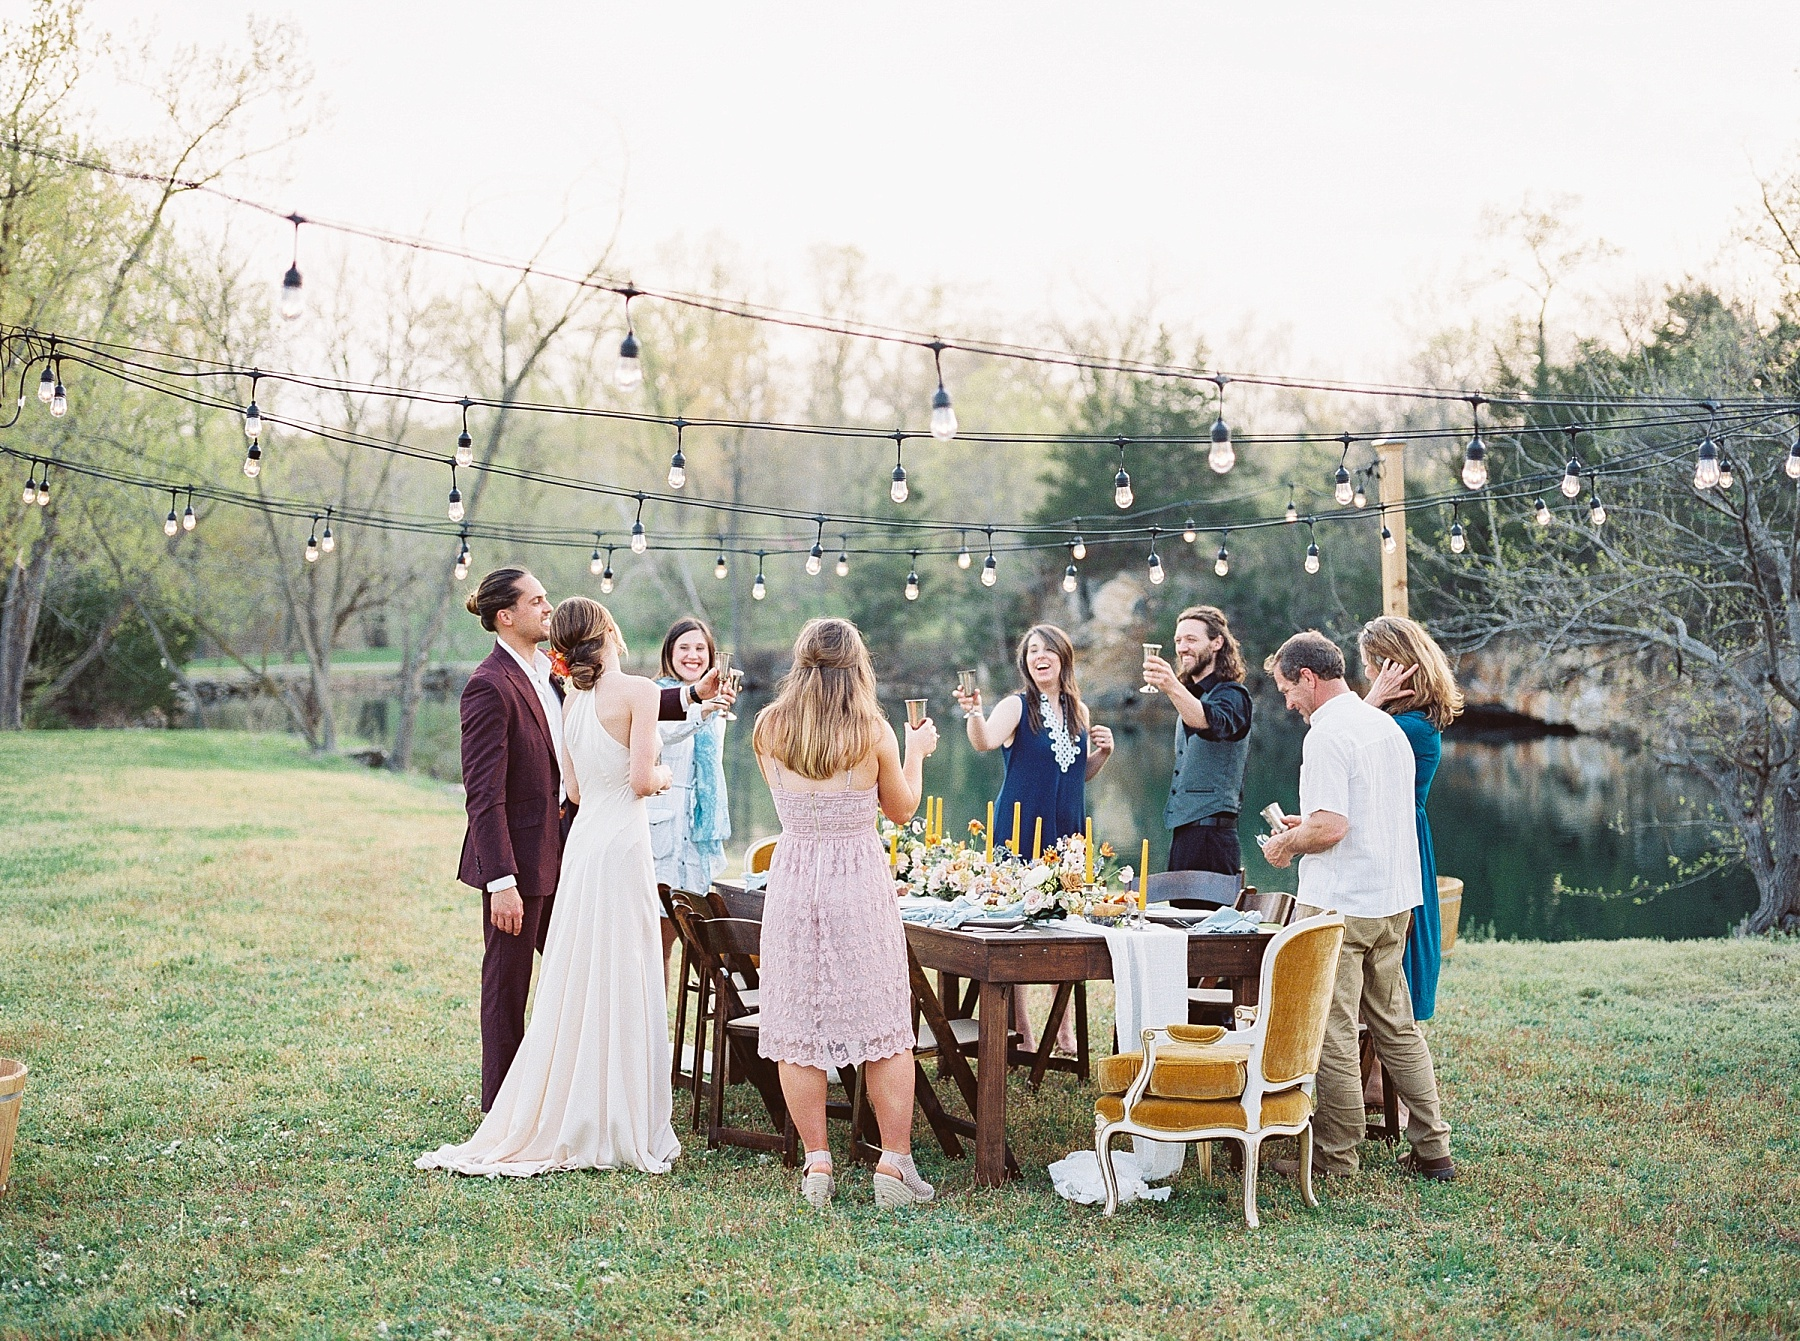 Intimate Spanish and French Inspired Destination Wedding with Lakeside Dinner Party at Dusk at Wildcliff by Kelsi Kliethermes Photography Best Missouri and Maui Wedding Photographer_0013.jpg